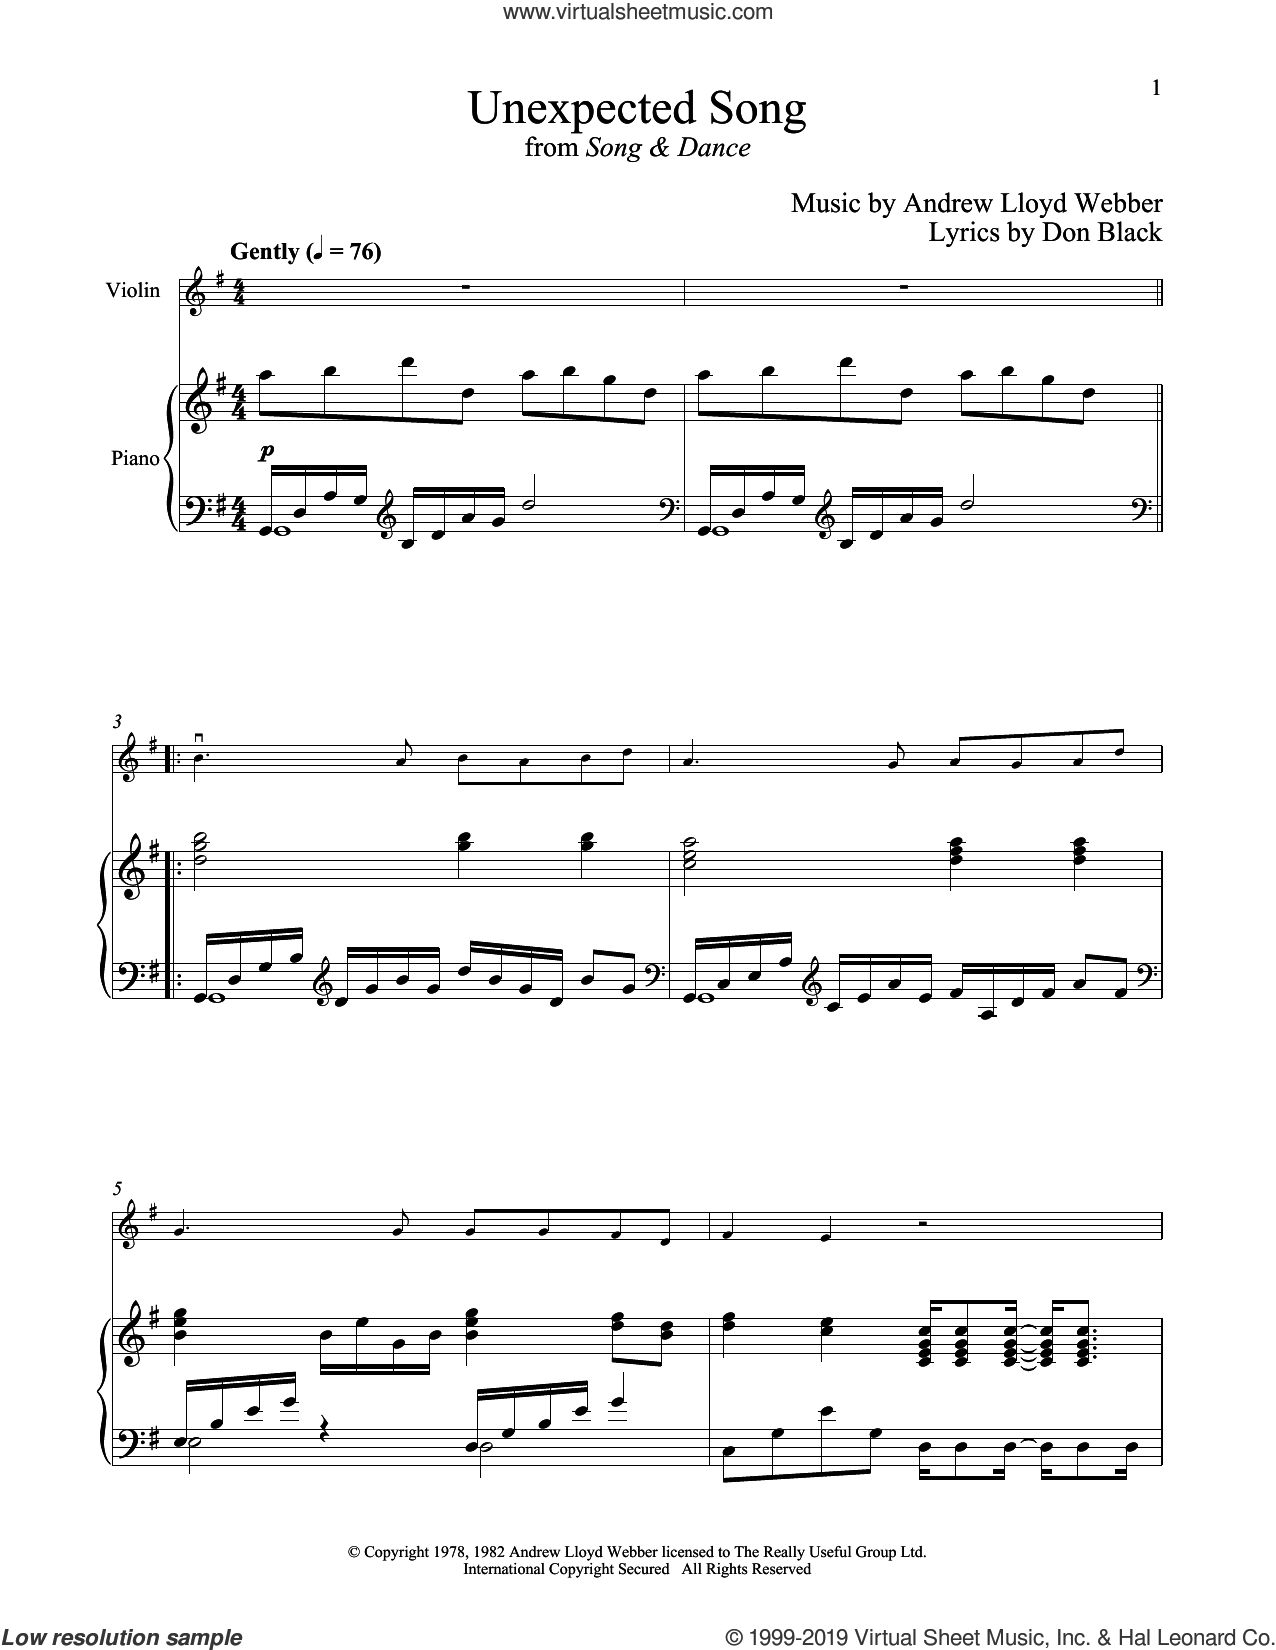 Unexpected Song (from Song and Dance) sheet music for violin and piano by Bernadette Peters, Andrew Lloyd Webber and Don Black, intermediate skill level